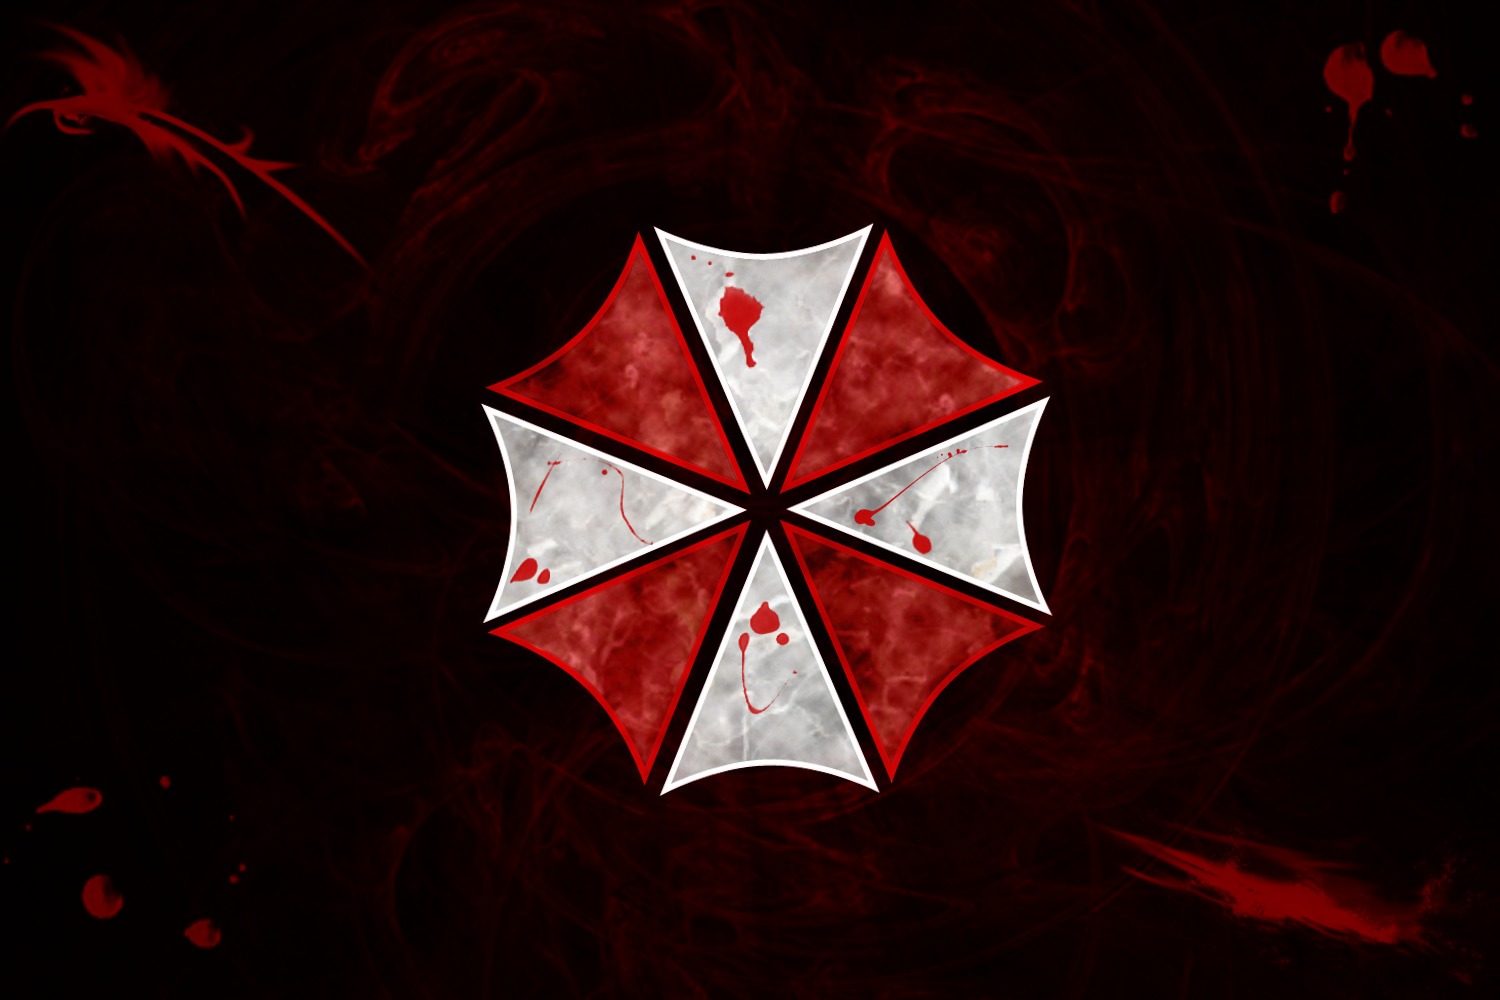 Creative assembly artist 39 s work reaveals artwork for - Umbrella corporation wallpaper hd 1366x768 ...